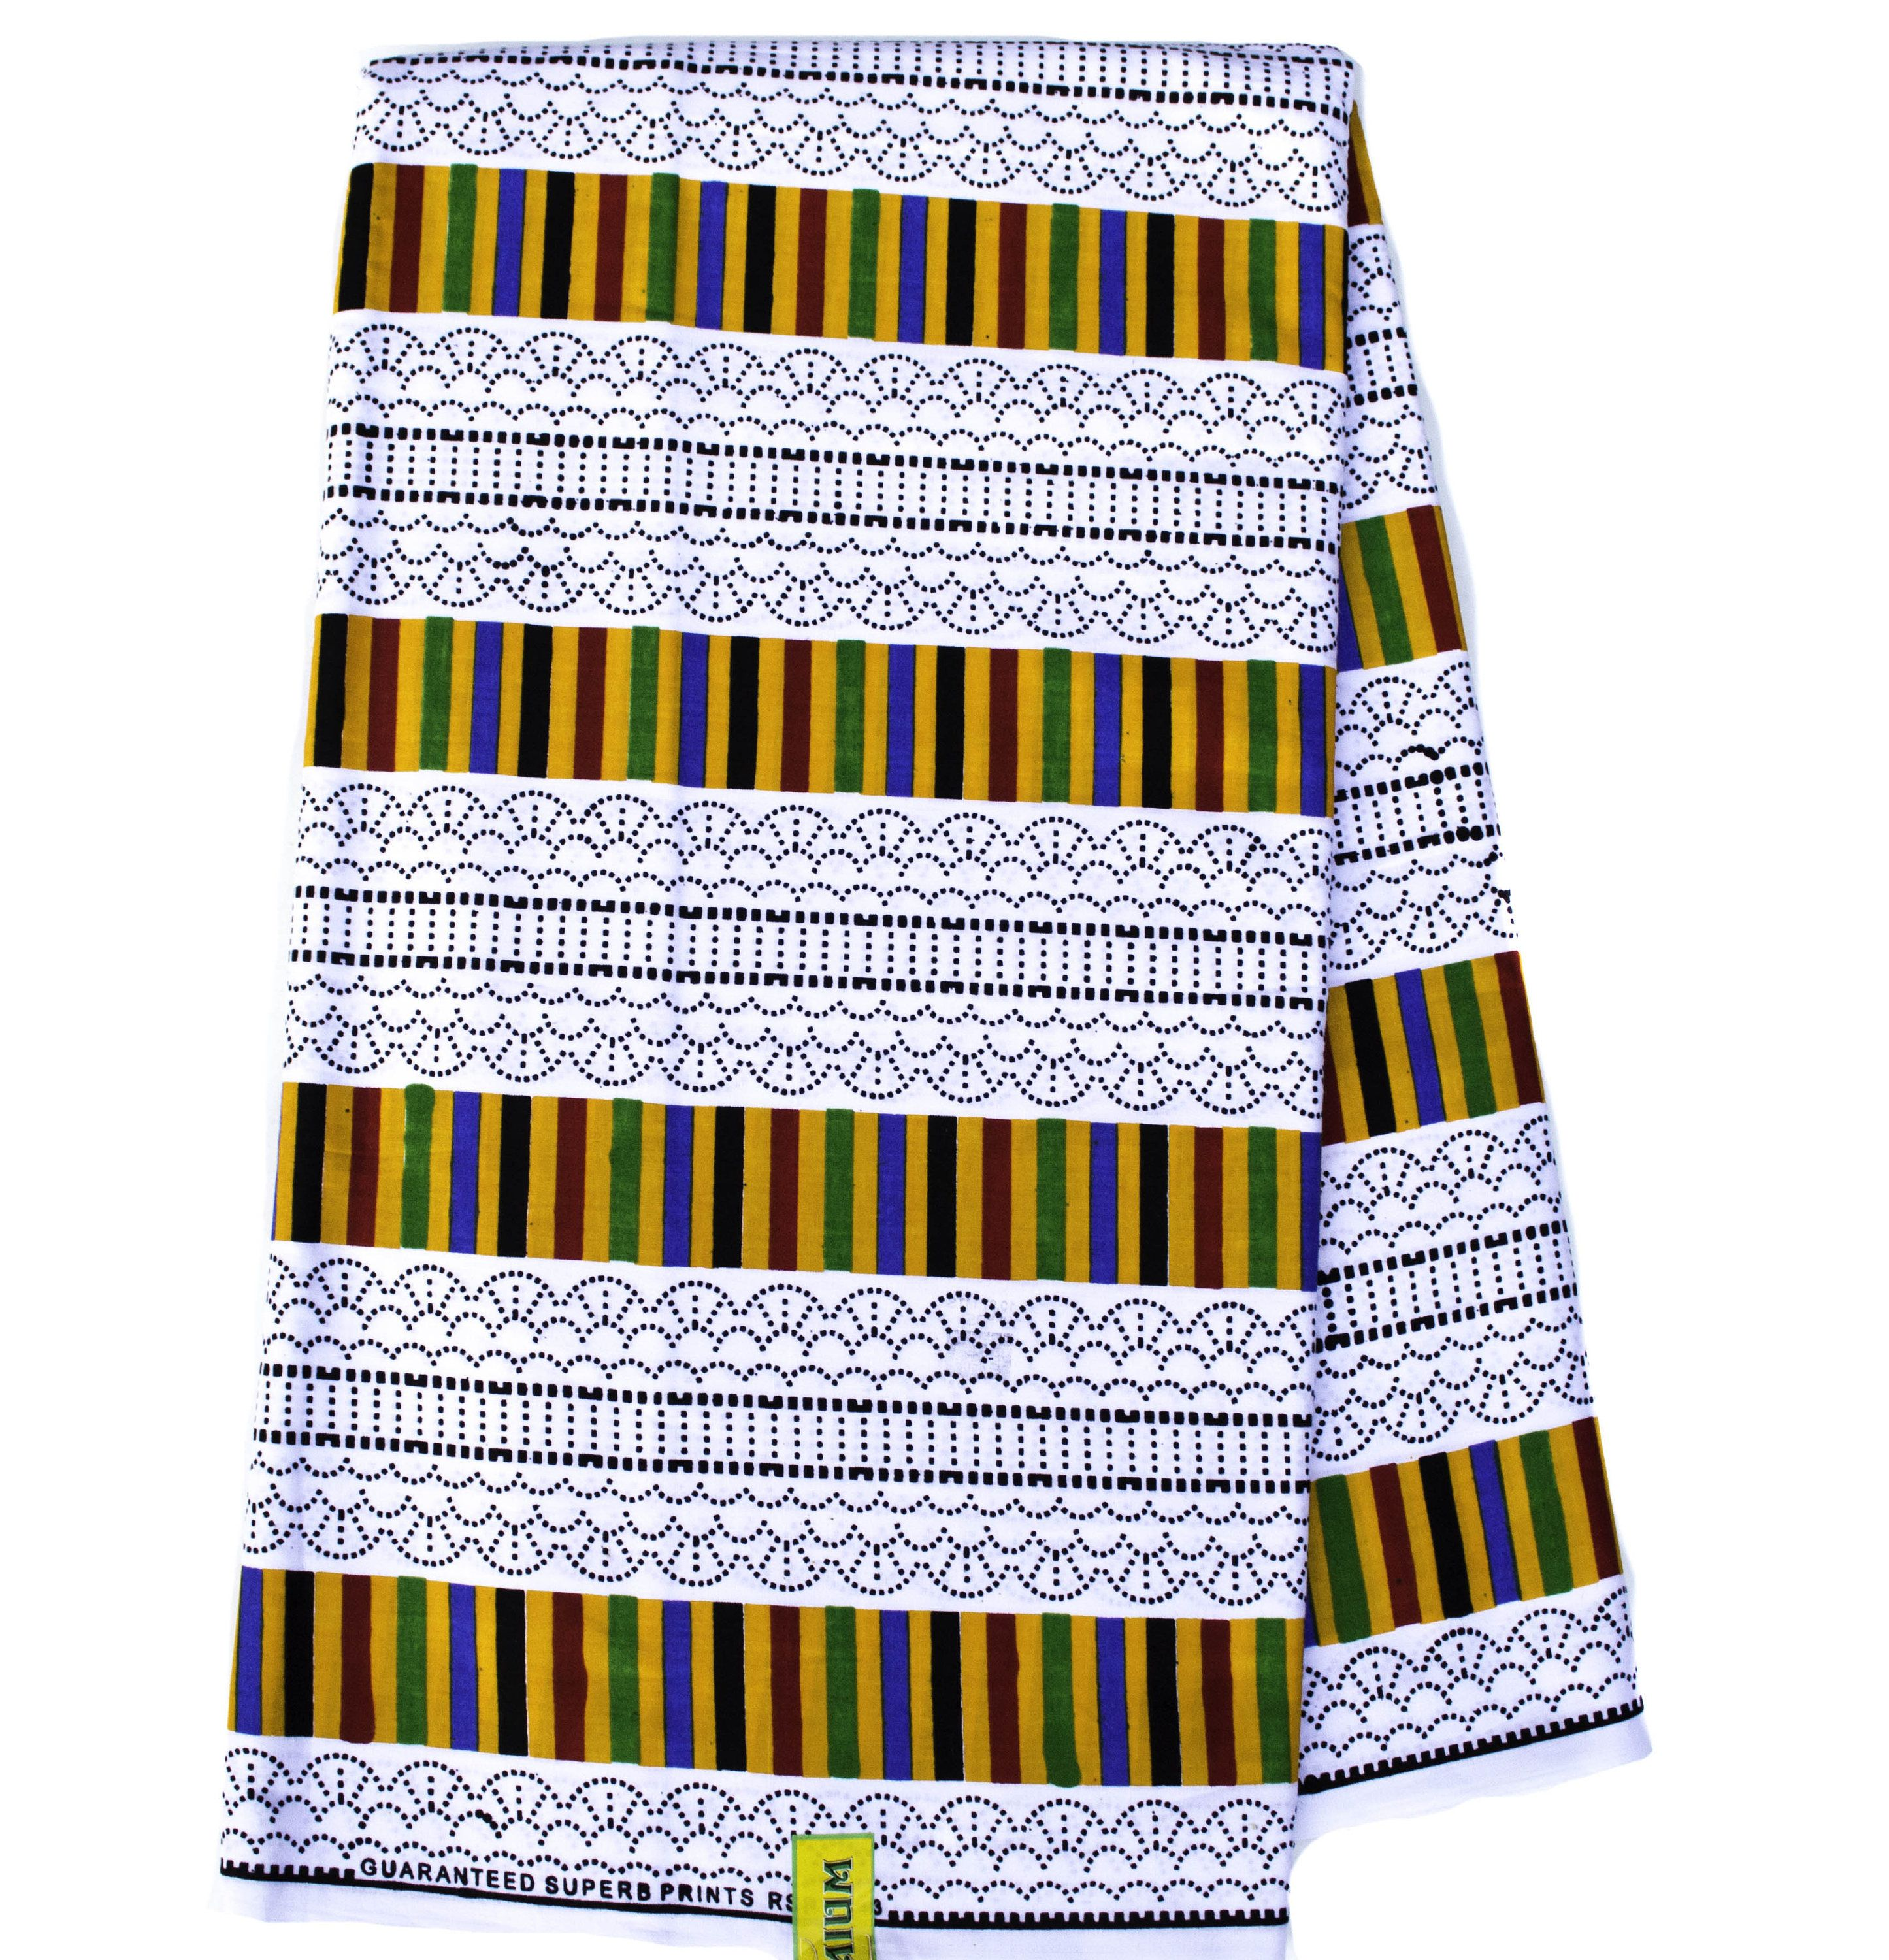 Ghana Kente Fabric, 6 yards/ Fabric from Ghana/ Ankara fabric/ Kente